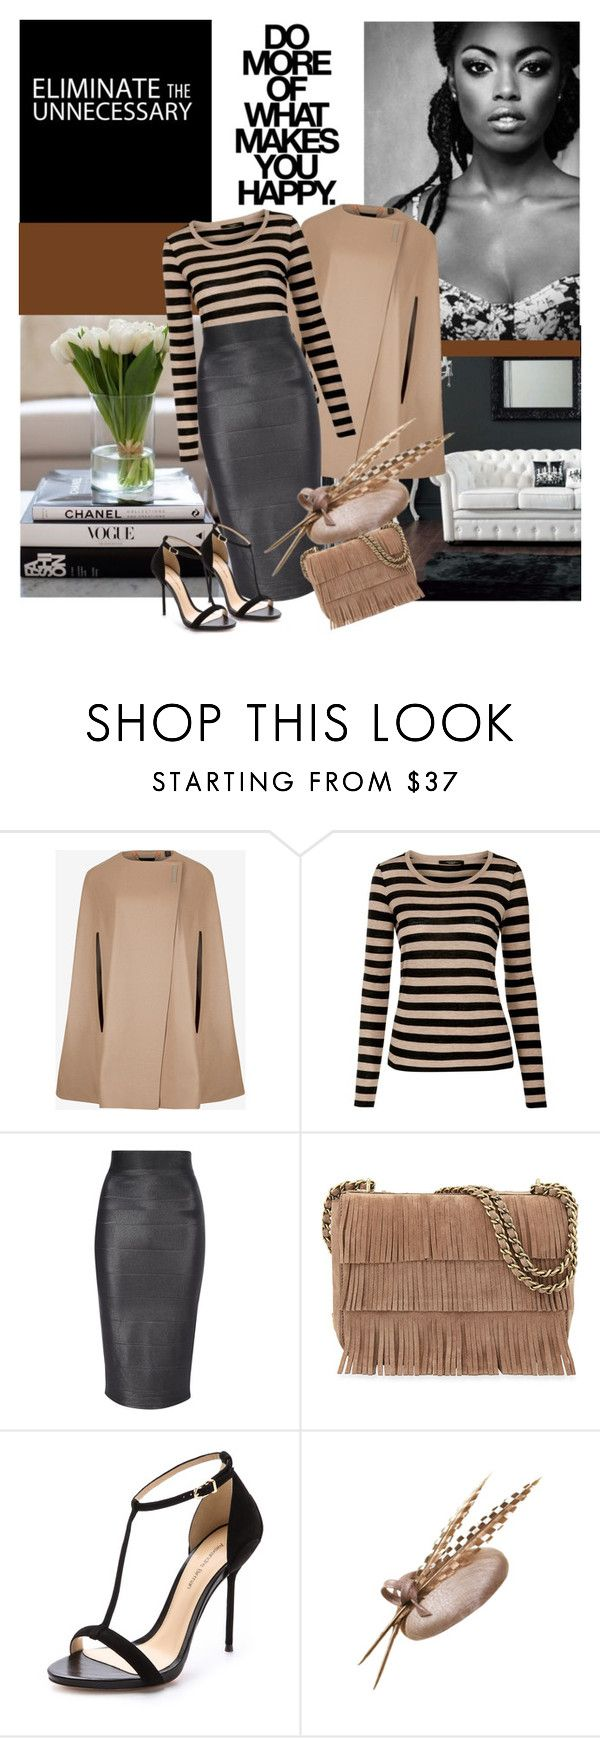 """Do More Of What Makes You Happy"" by marina-volaric ❤ liked on Polyvore featuring Ted Baker, Weekend Max Mara, Jane Norman, Tory Burch, Alexandre Birman, nude, cape, MaxMara and fringedbag"